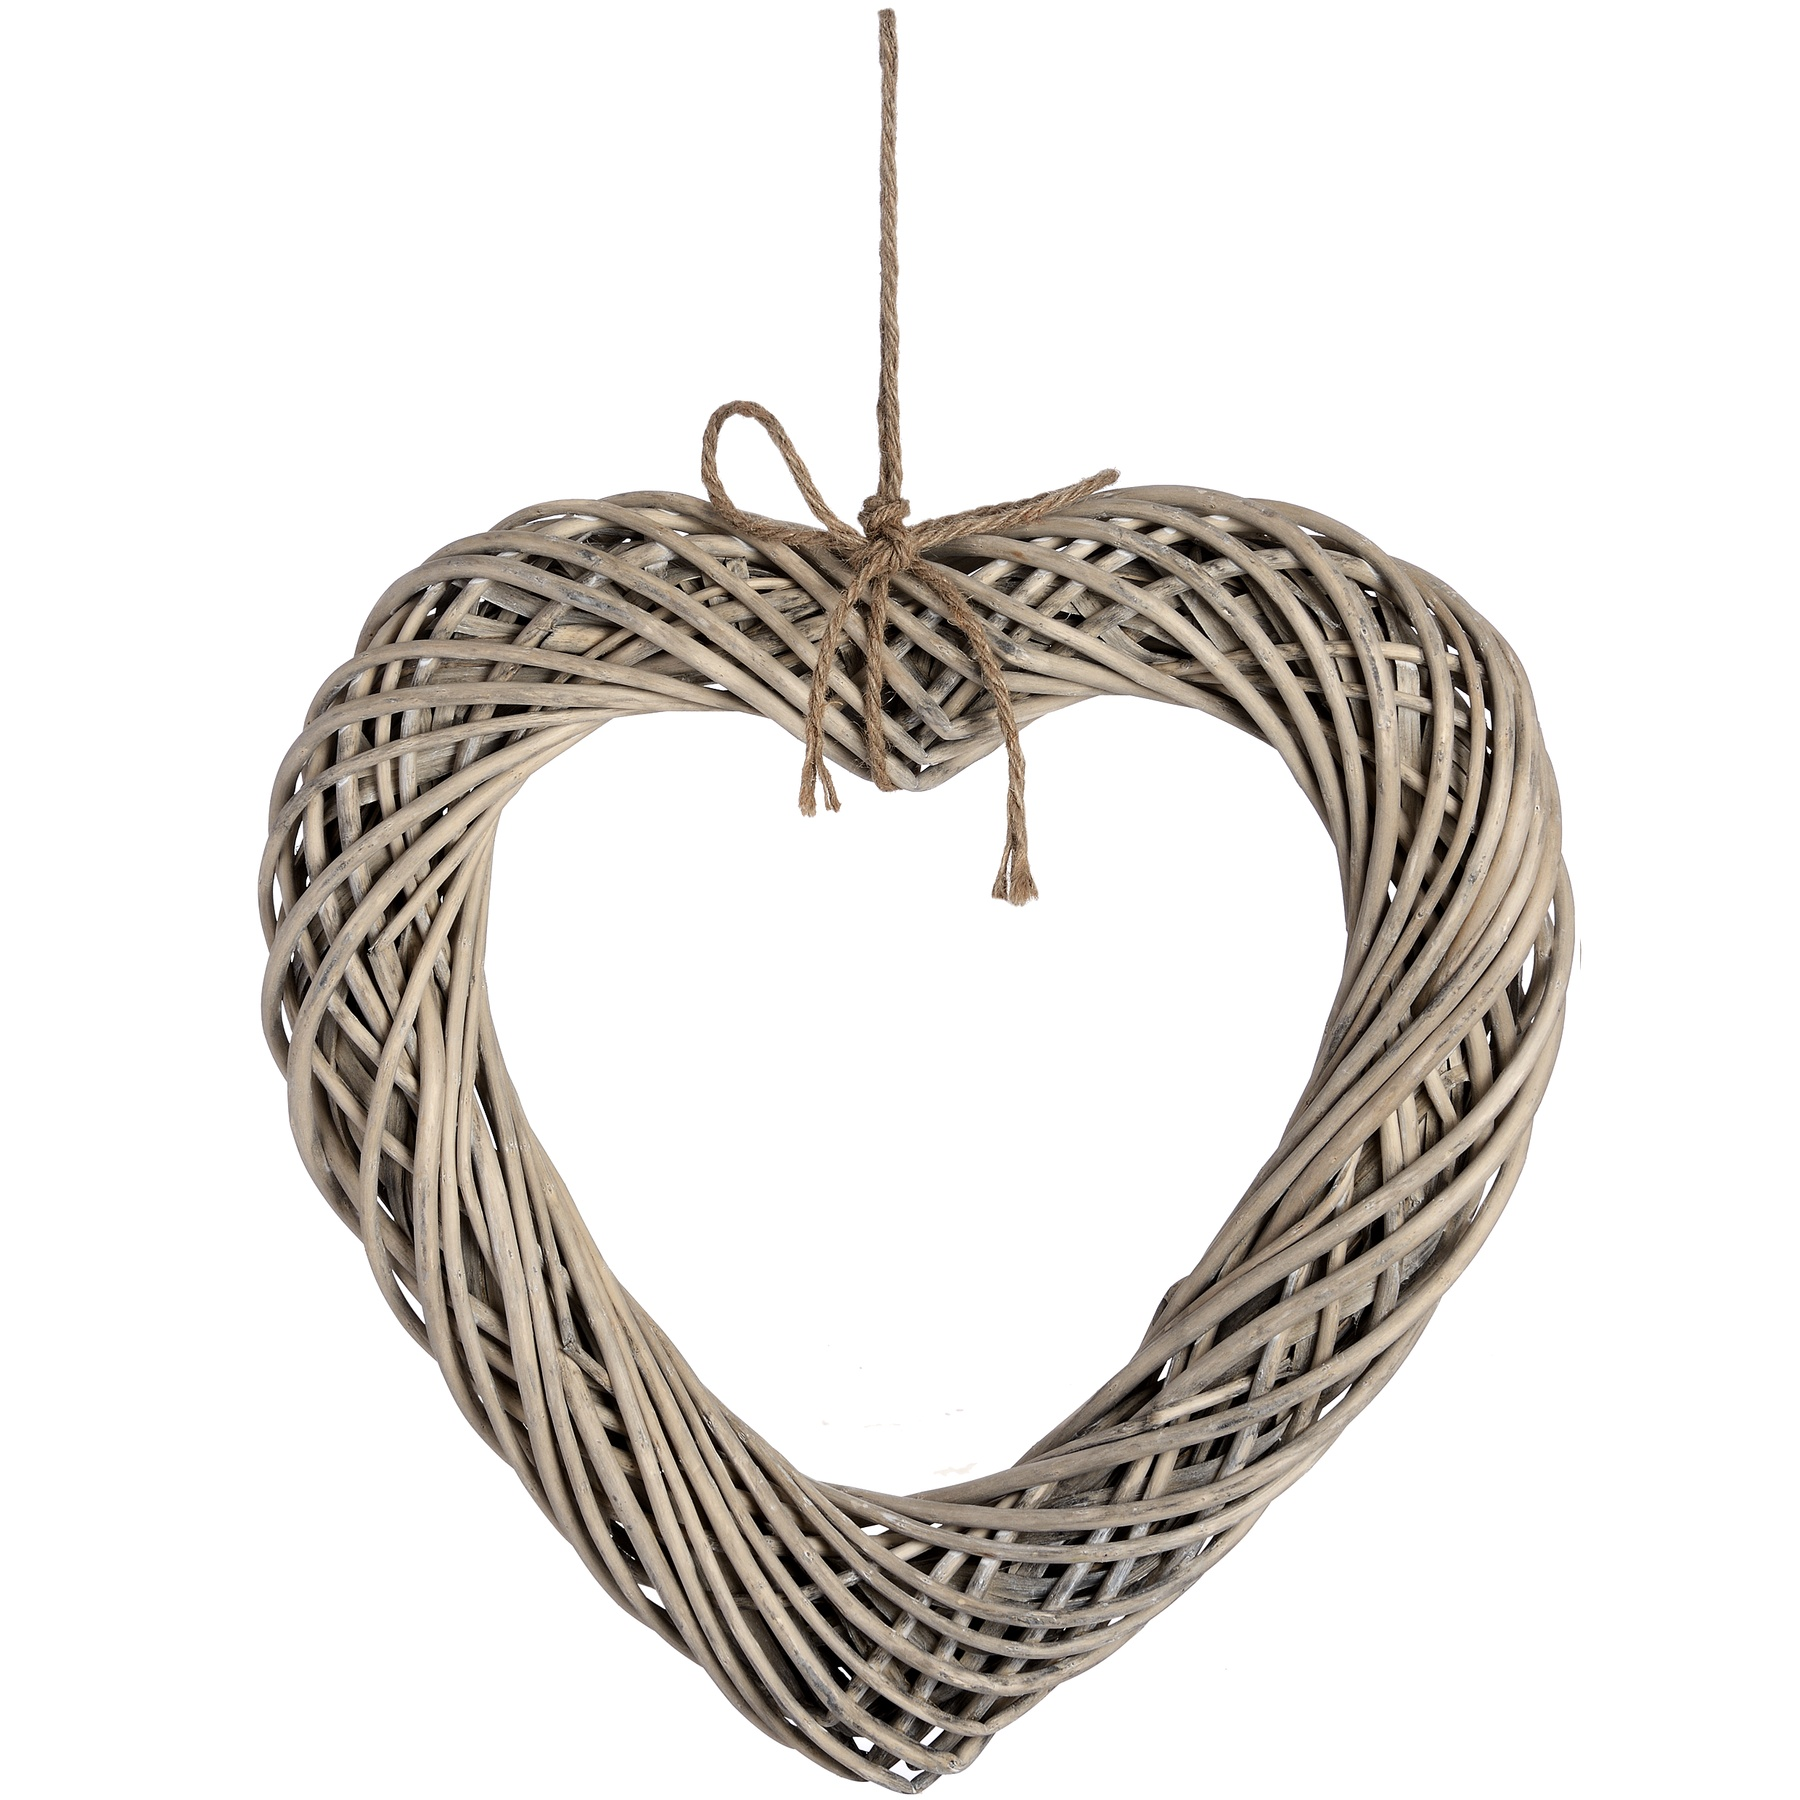 Brown Large Wicker Hanging Heart with Rope Detail